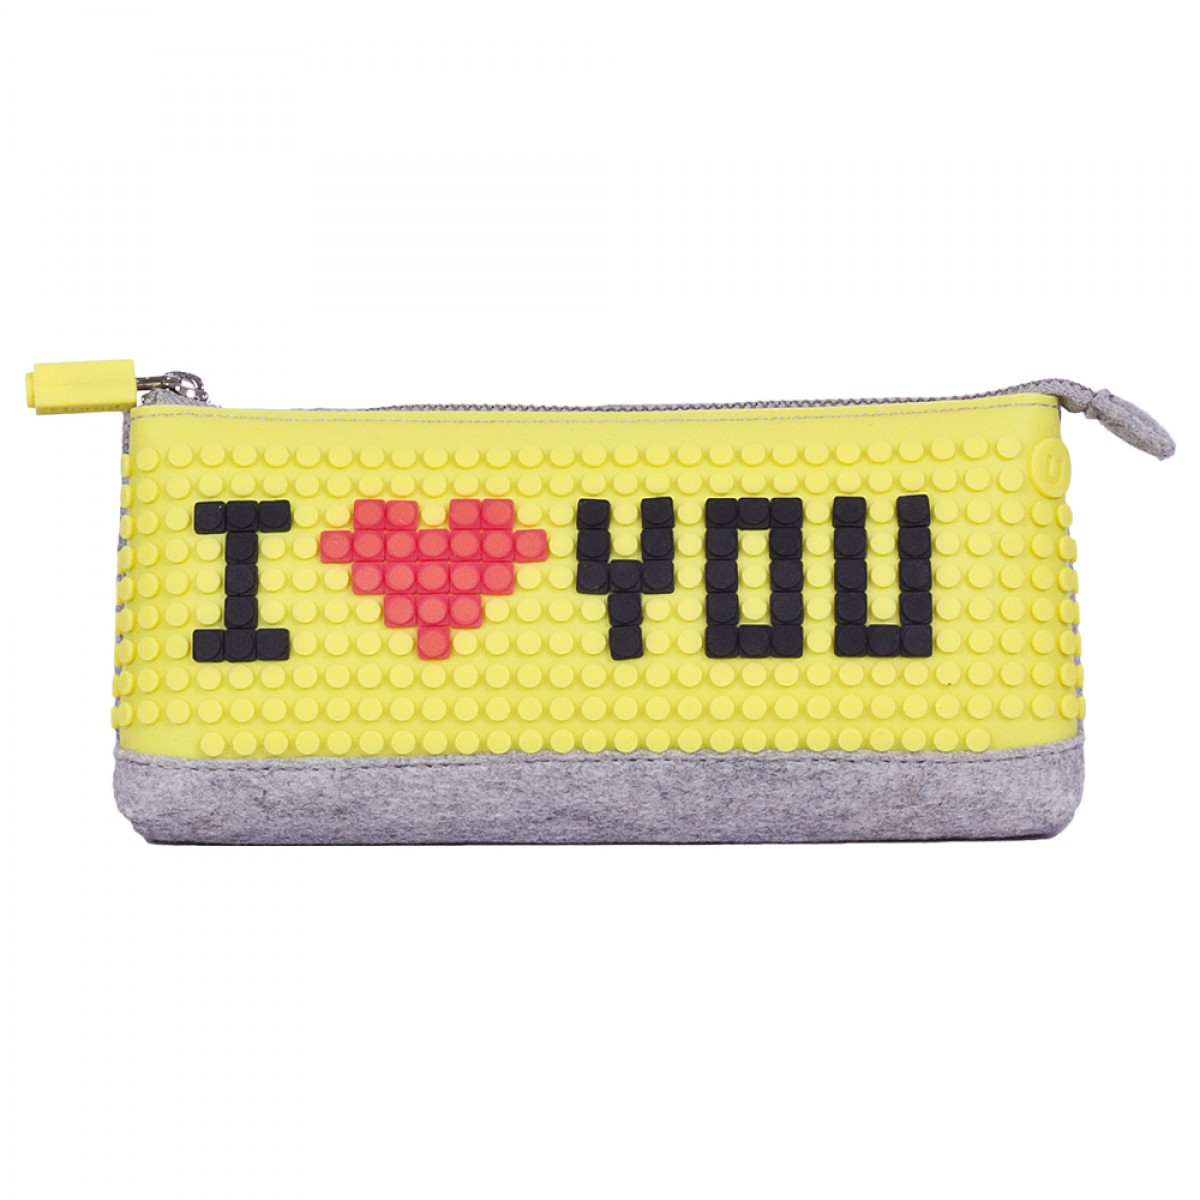 UPixel Pencil Case - Yellow/Purple